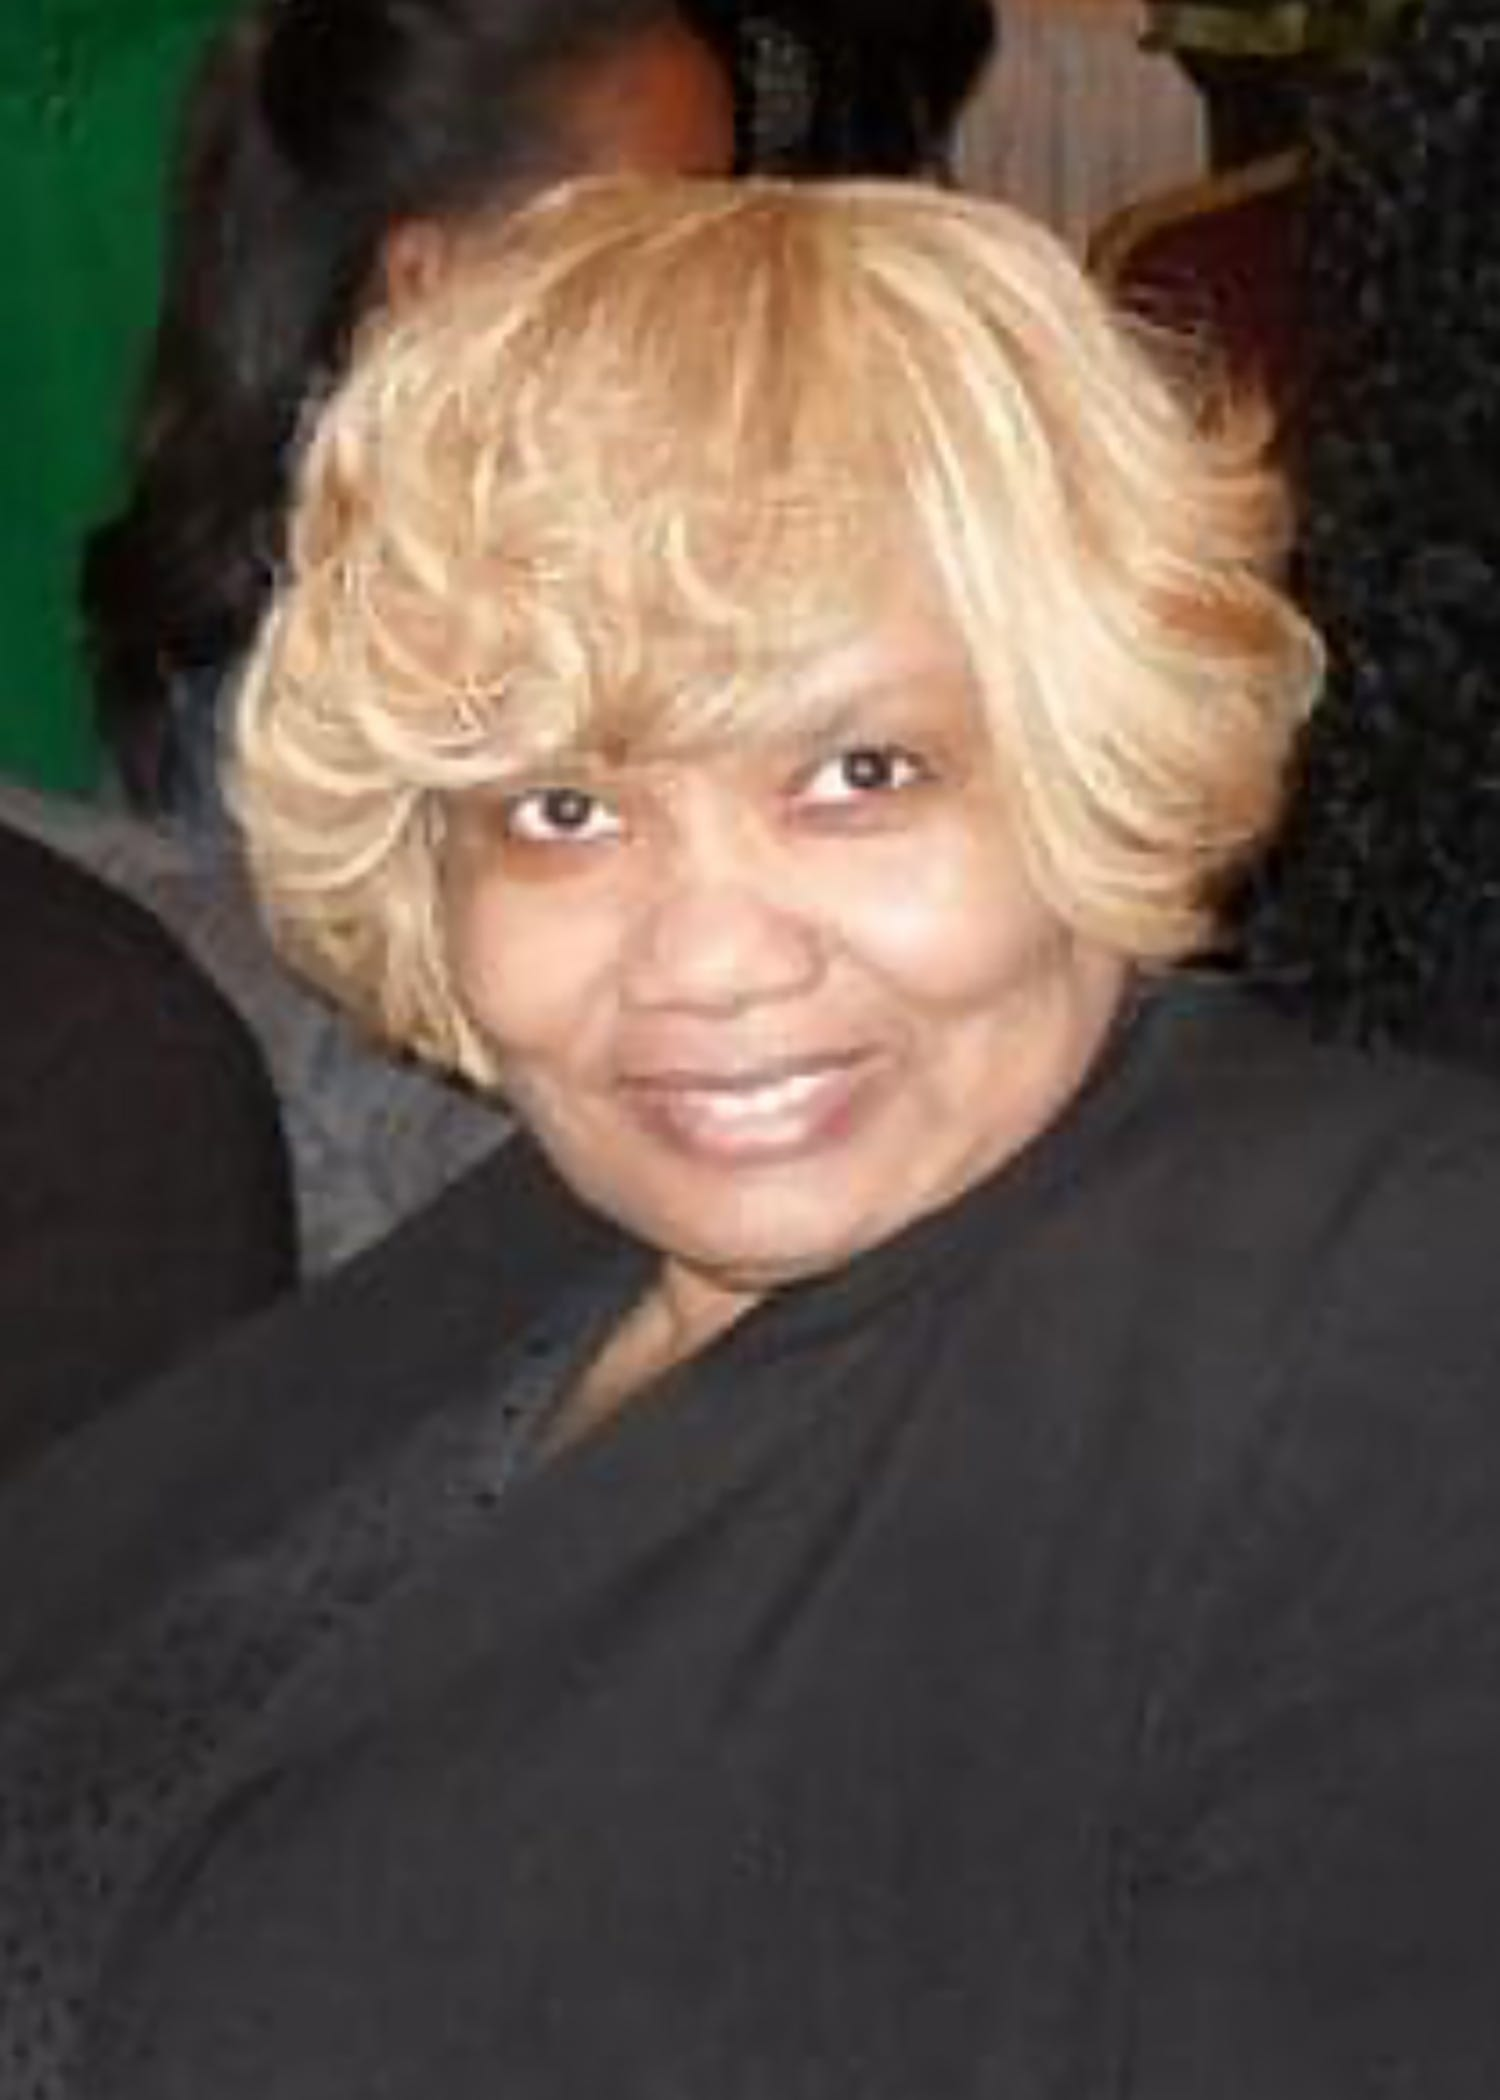 Sylvia Cavitt, 72, of Detroit, was never tested for the coronavirus. She loved to cook, host family gatherings and sang in the Historic St. James adult choir, her daughter, Kimberly Robertson, said. Cavitt died at home on March 23, 2020.